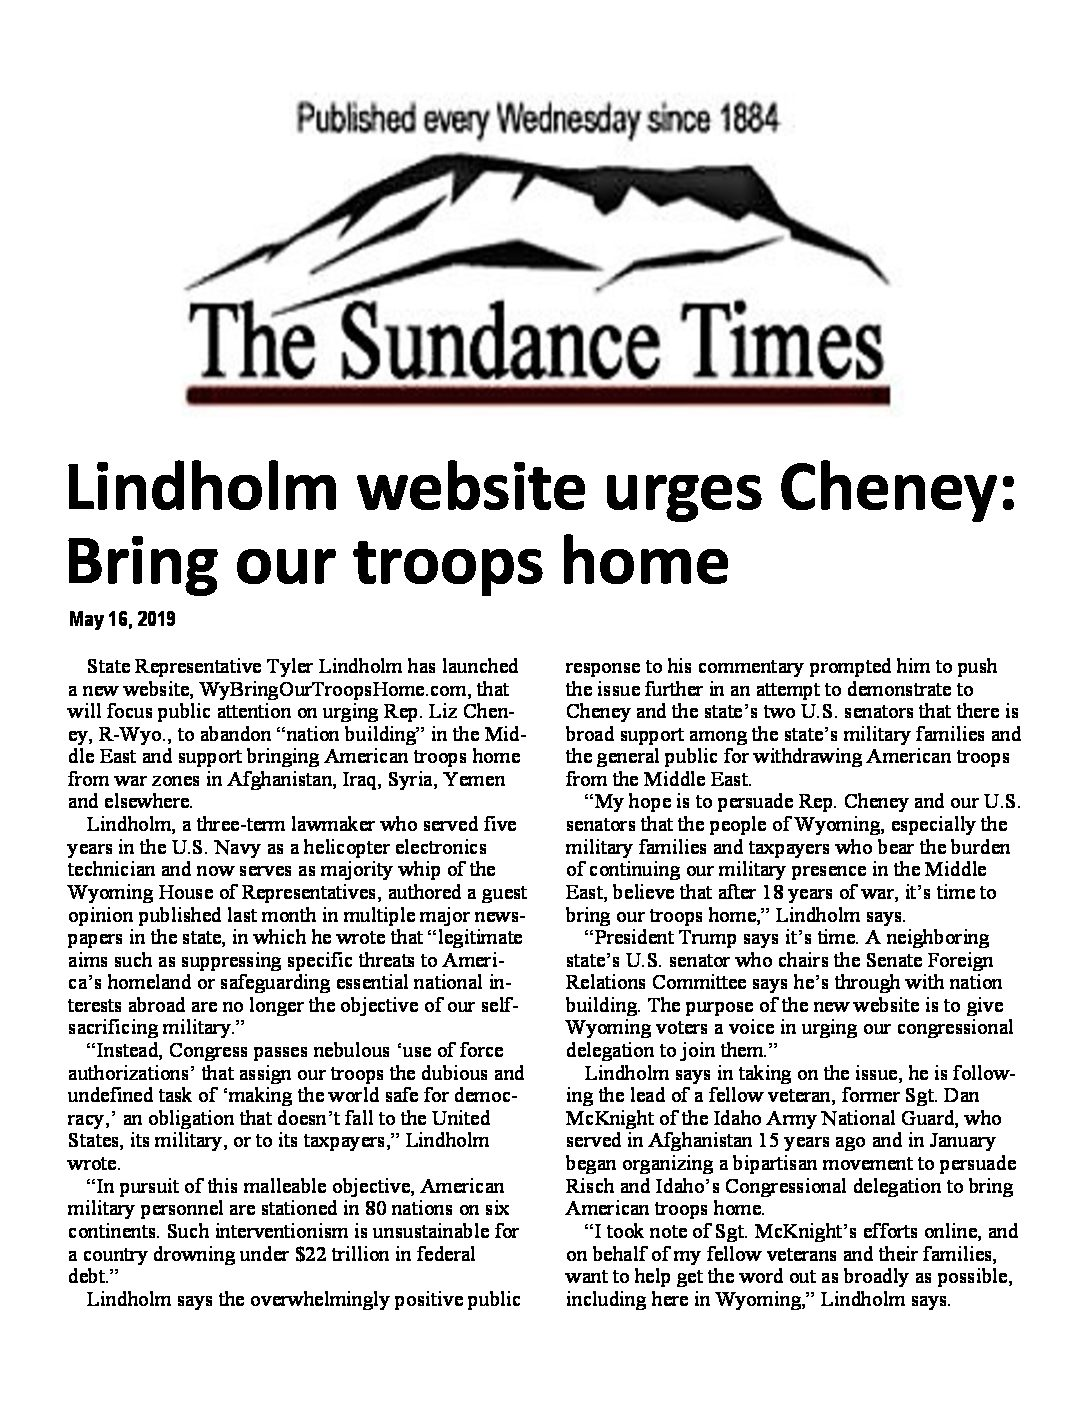 The Sundance Times – Lindholm website urges Cheney – Bring Our Troops Home